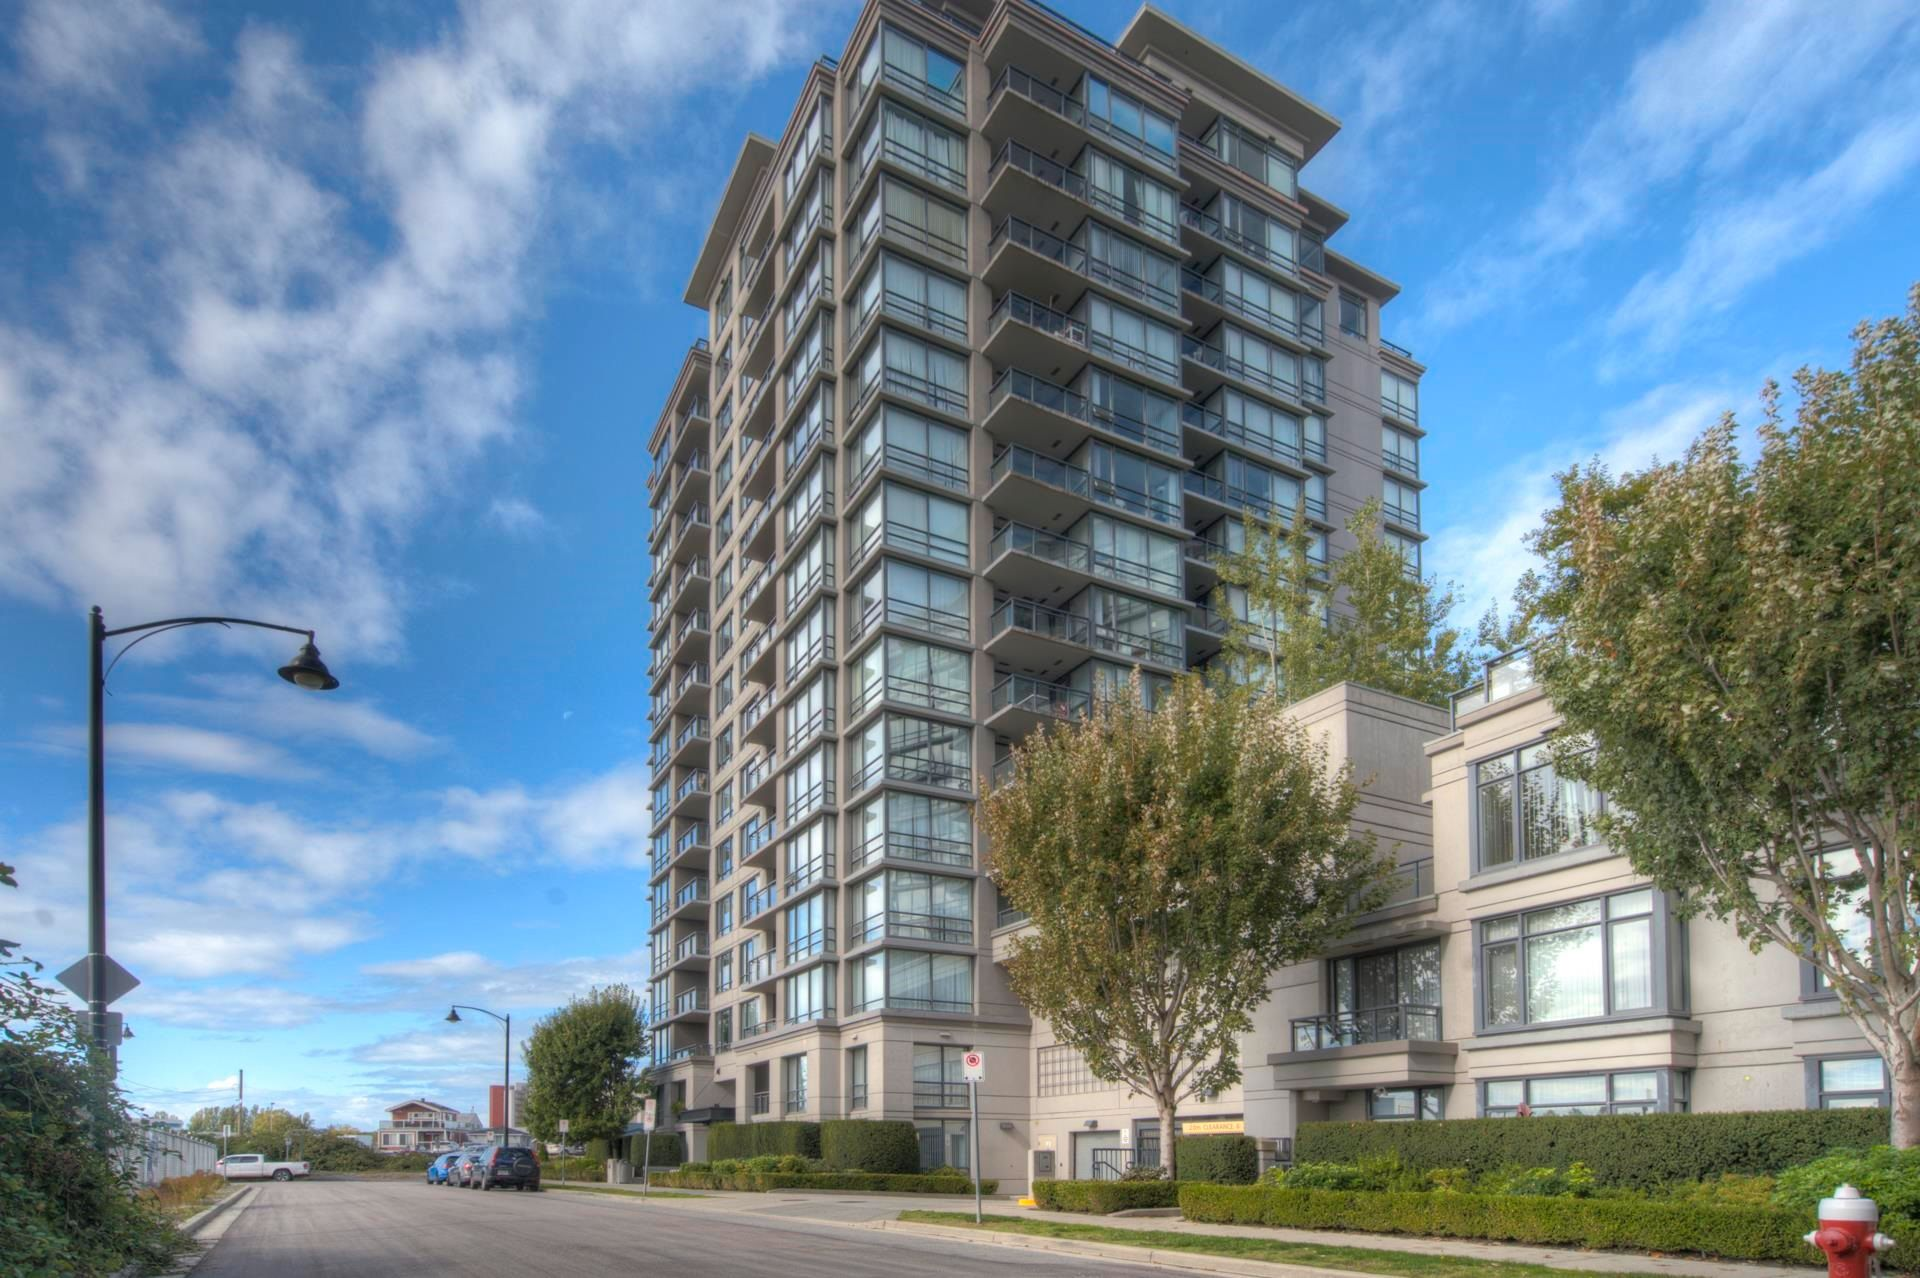 """Main Photo: 806 3333 CORVETTE Way in Richmond: West Cambie Condo for sale in """"Wall Centre at the Marina"""" : MLS®# R2622056"""